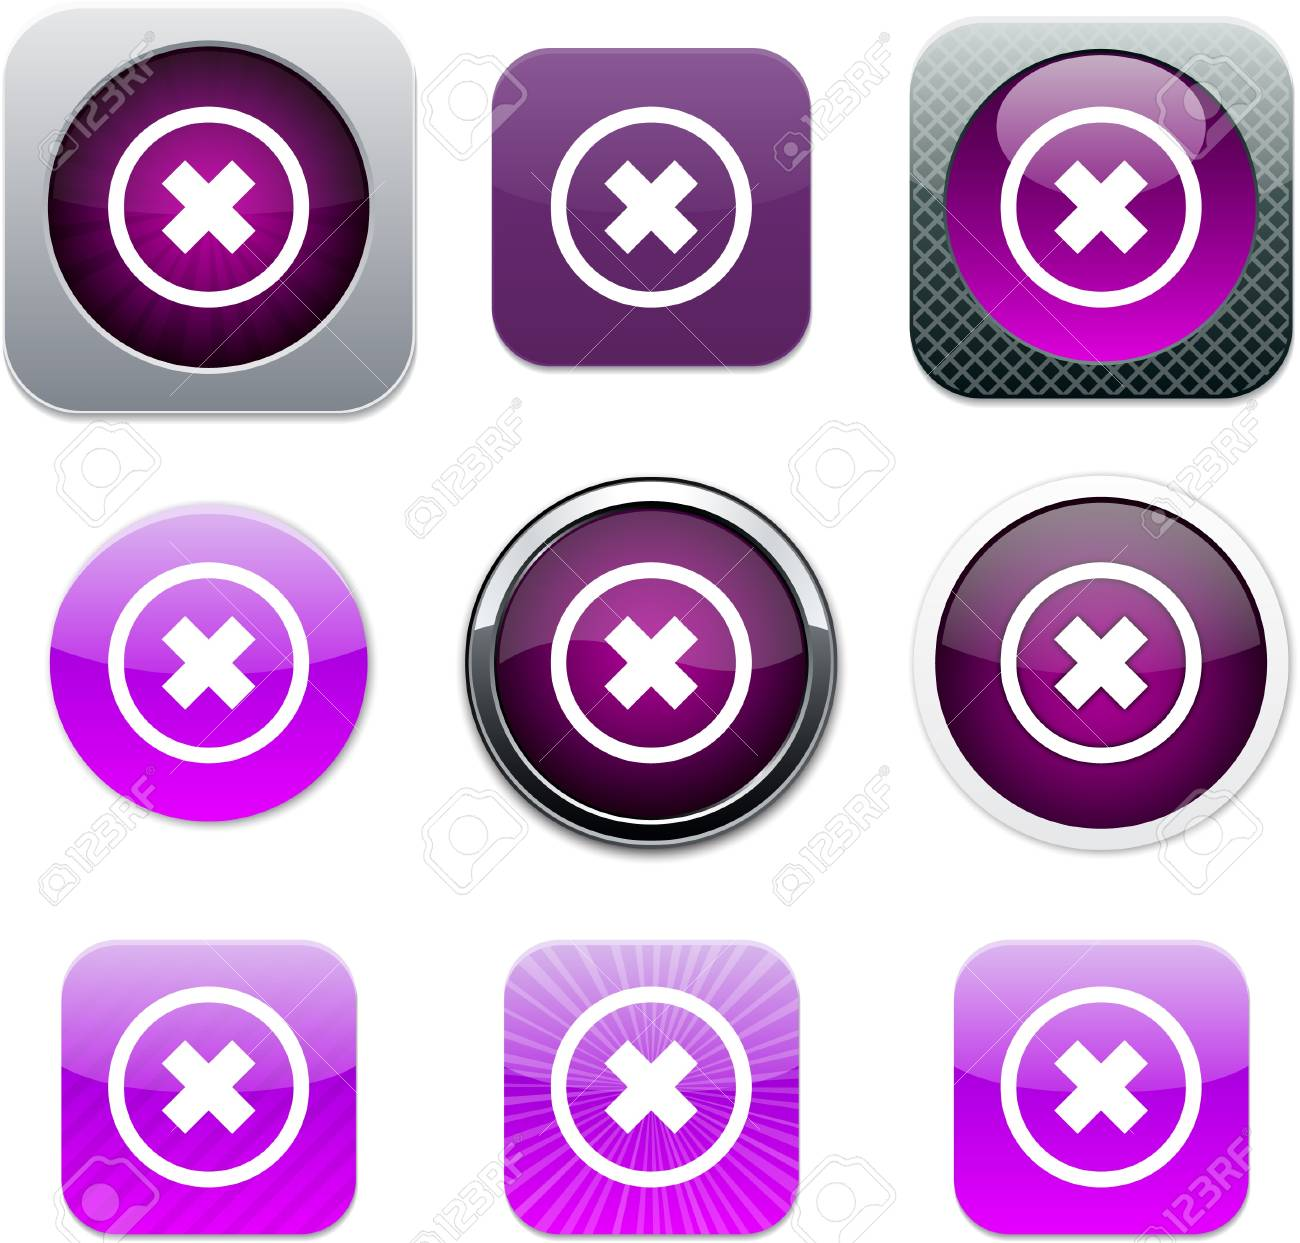 Set of apps icons. Vector illustration. Stock Vector - 9946202